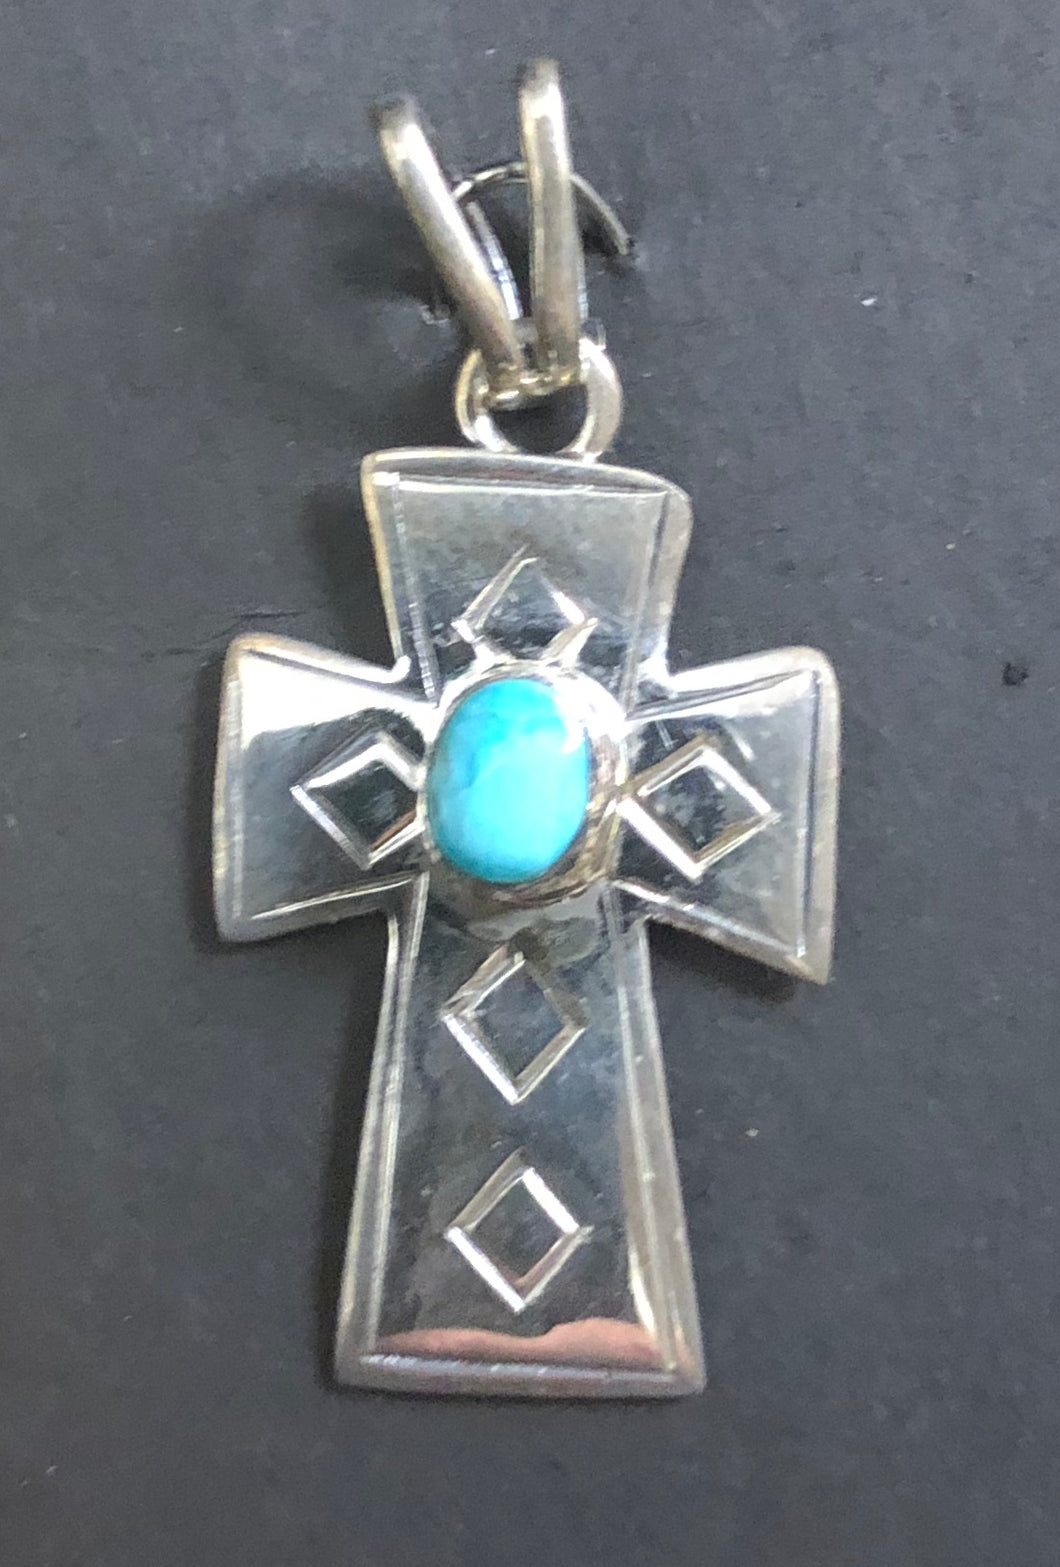 Turquoise sterling silver cross necklace pendant